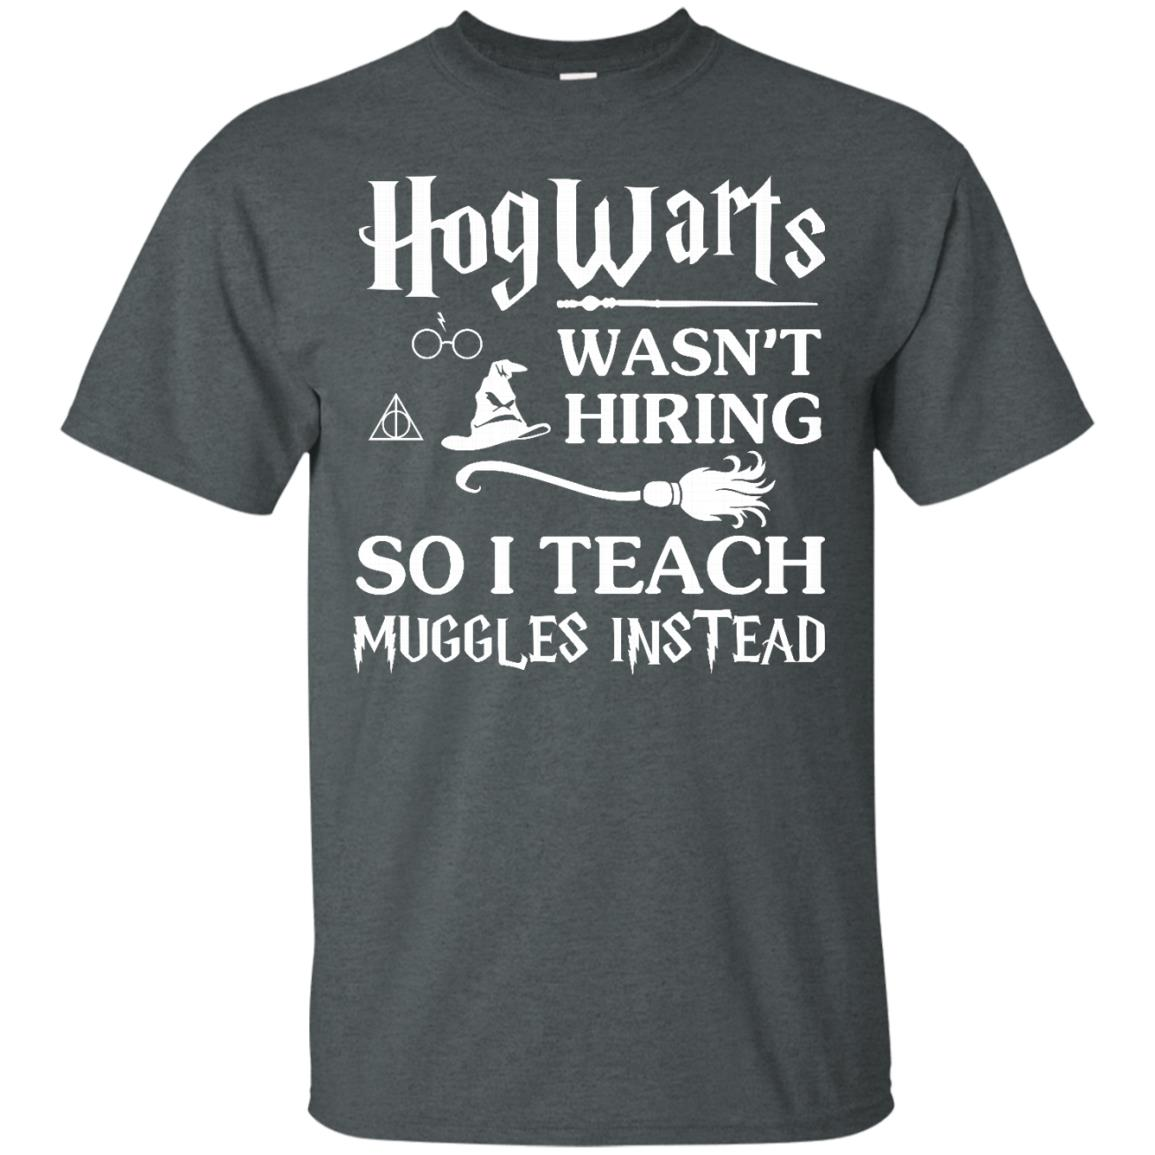 image 271px Hogwarts Wasn't Hiring So I Teach Muggles Instead T Shirts, Hoodies, Tank Top